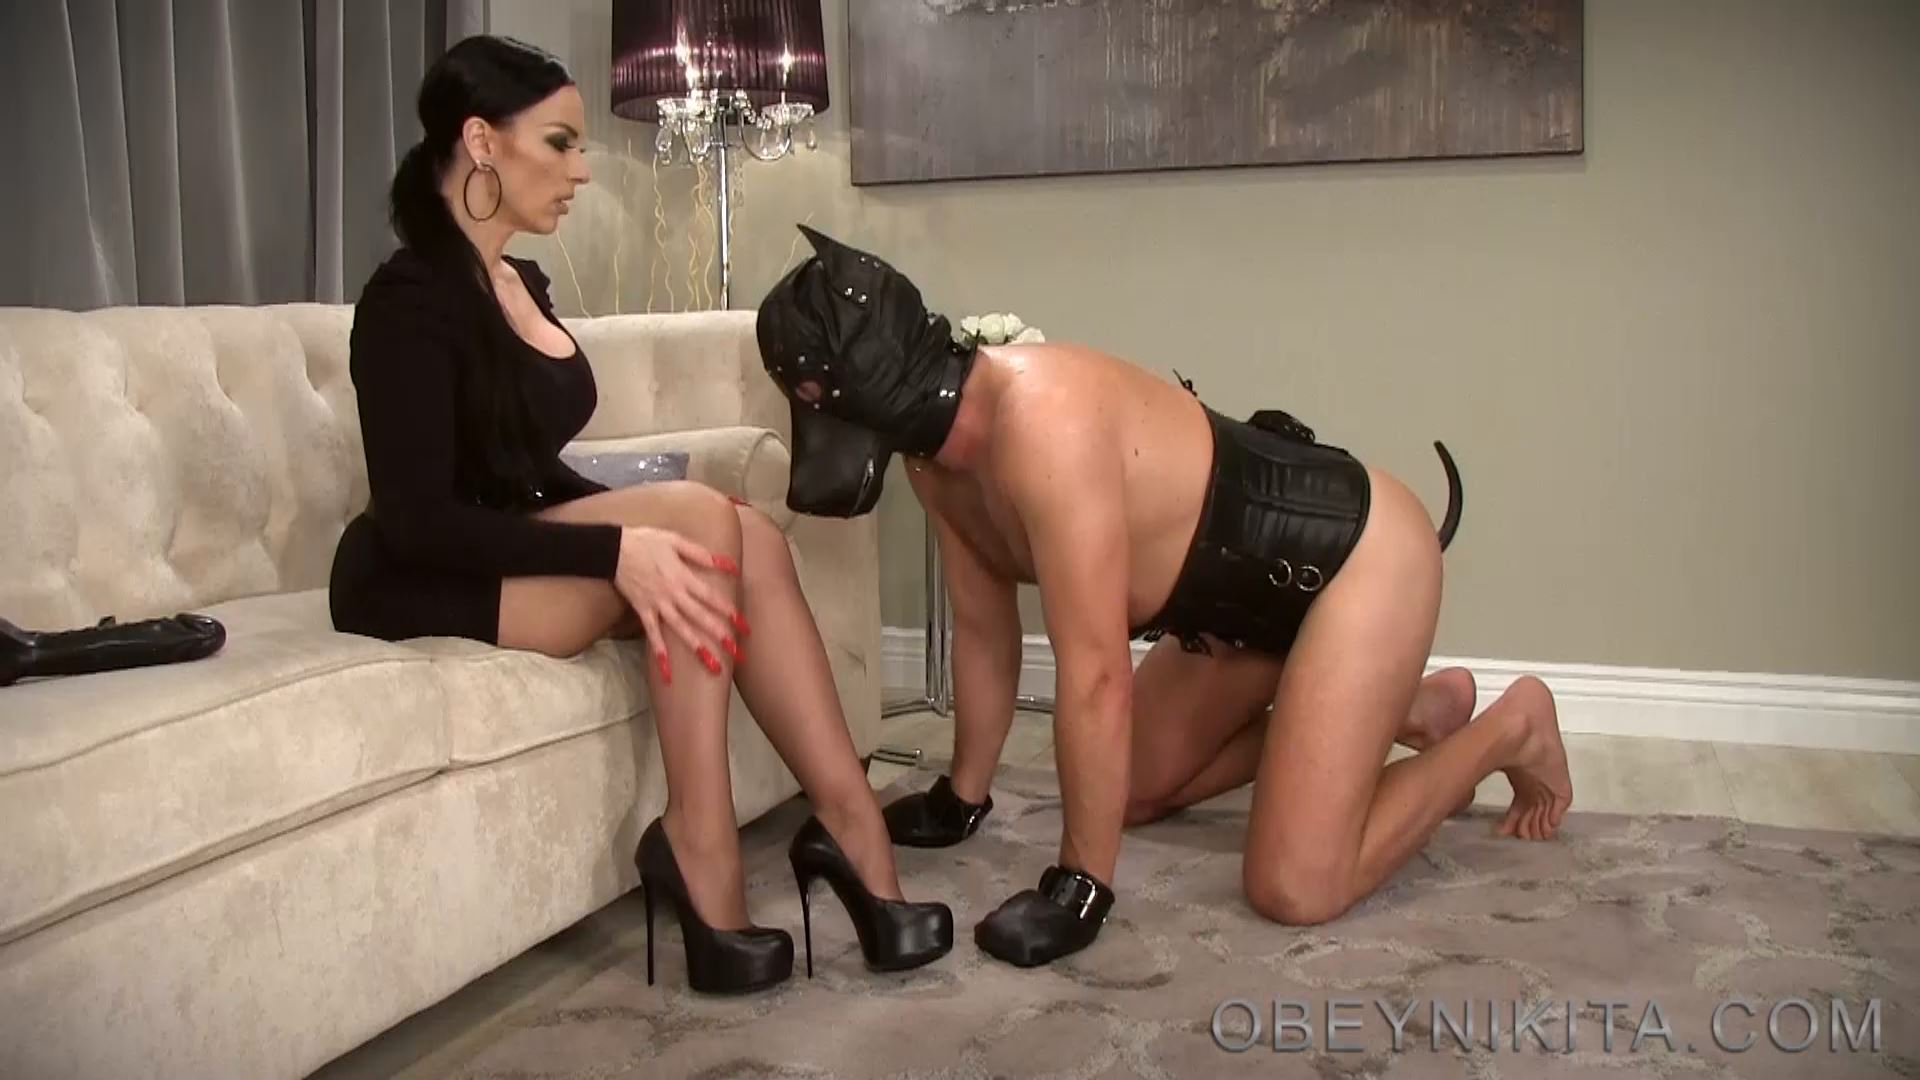 THIRSTY PUPPY. FEATURING: MISTRESS NIKITA - OBEYNIKITA - FULL HD/1080p/MP4